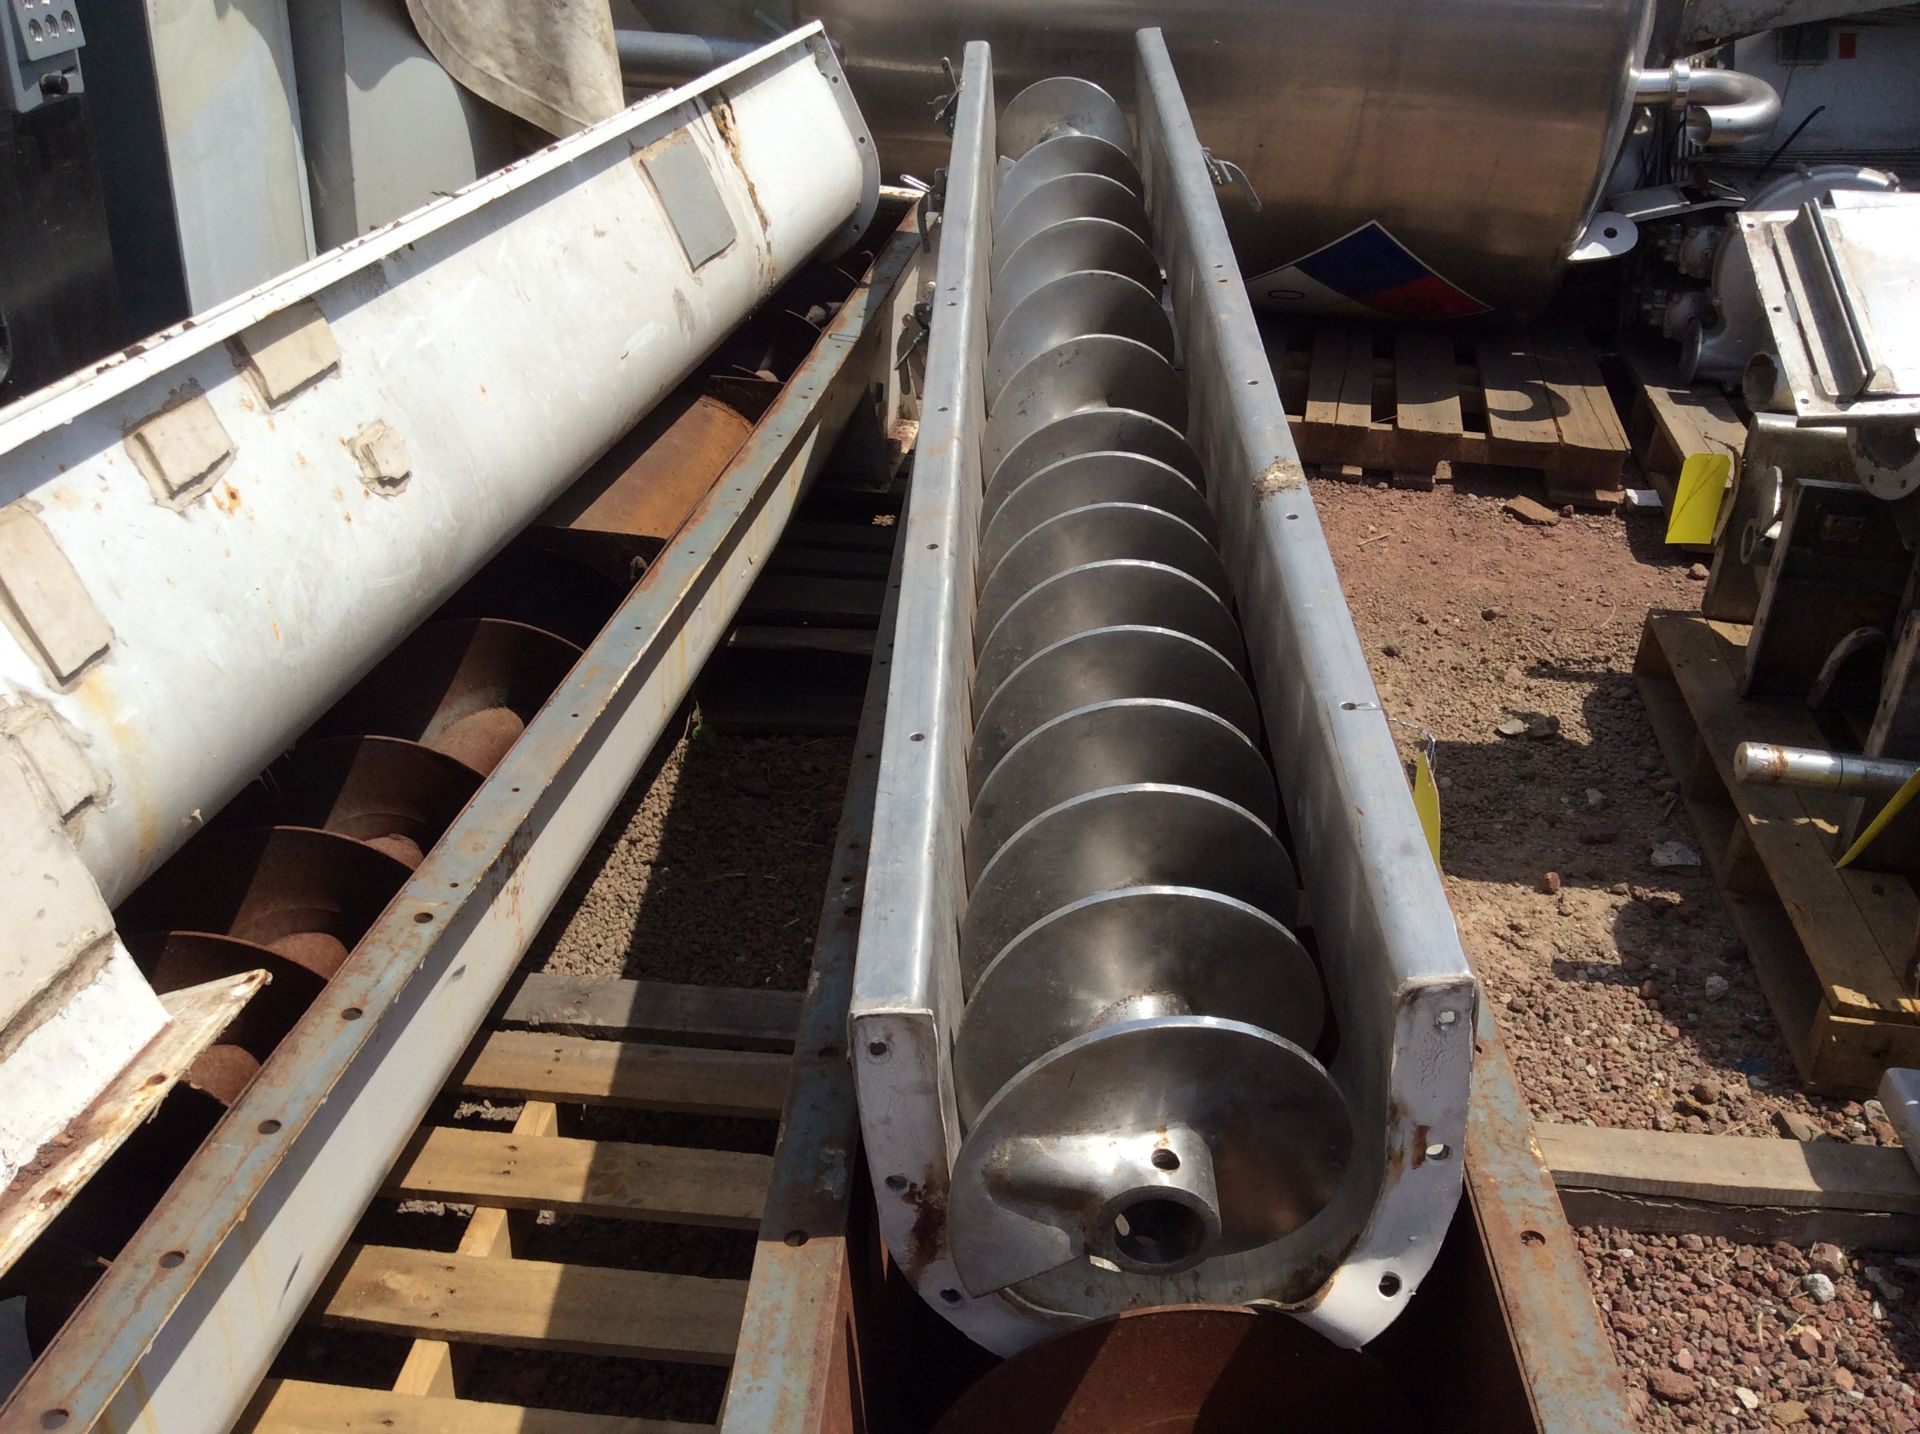 4 helical conveyors, includes 1 geared motor. Please inspect - Image 6 of 11